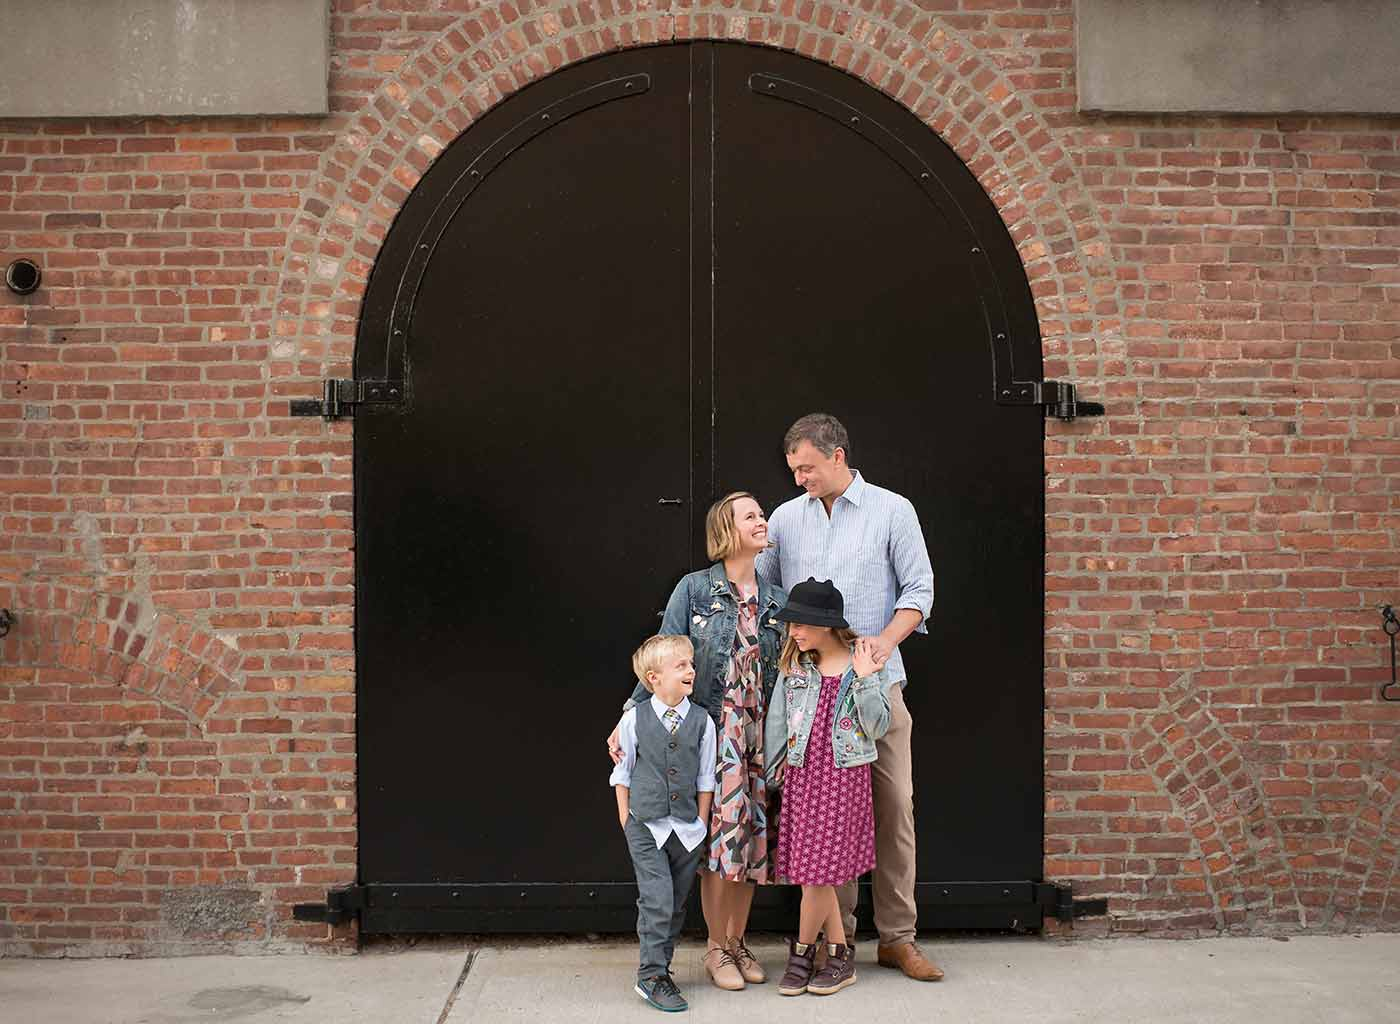 Modern NYC family standing near an iron gate in Brooklyn's industrial section